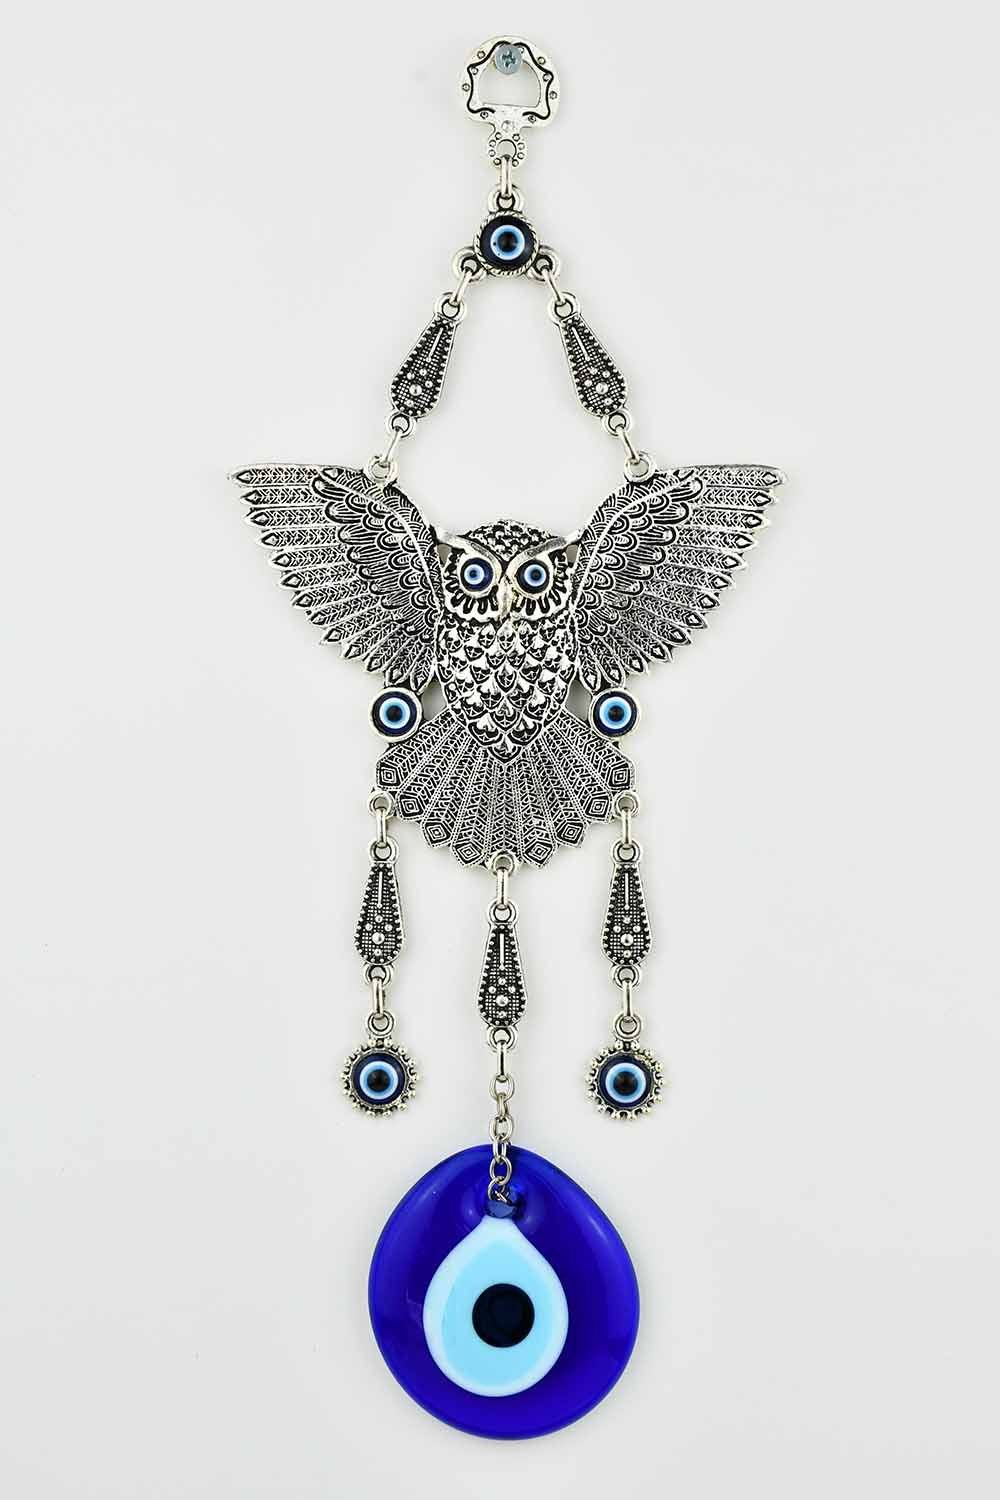 Evil Eye Ornament Owl Design Medium #4 Evil Eye Sydney Grand Bazaar